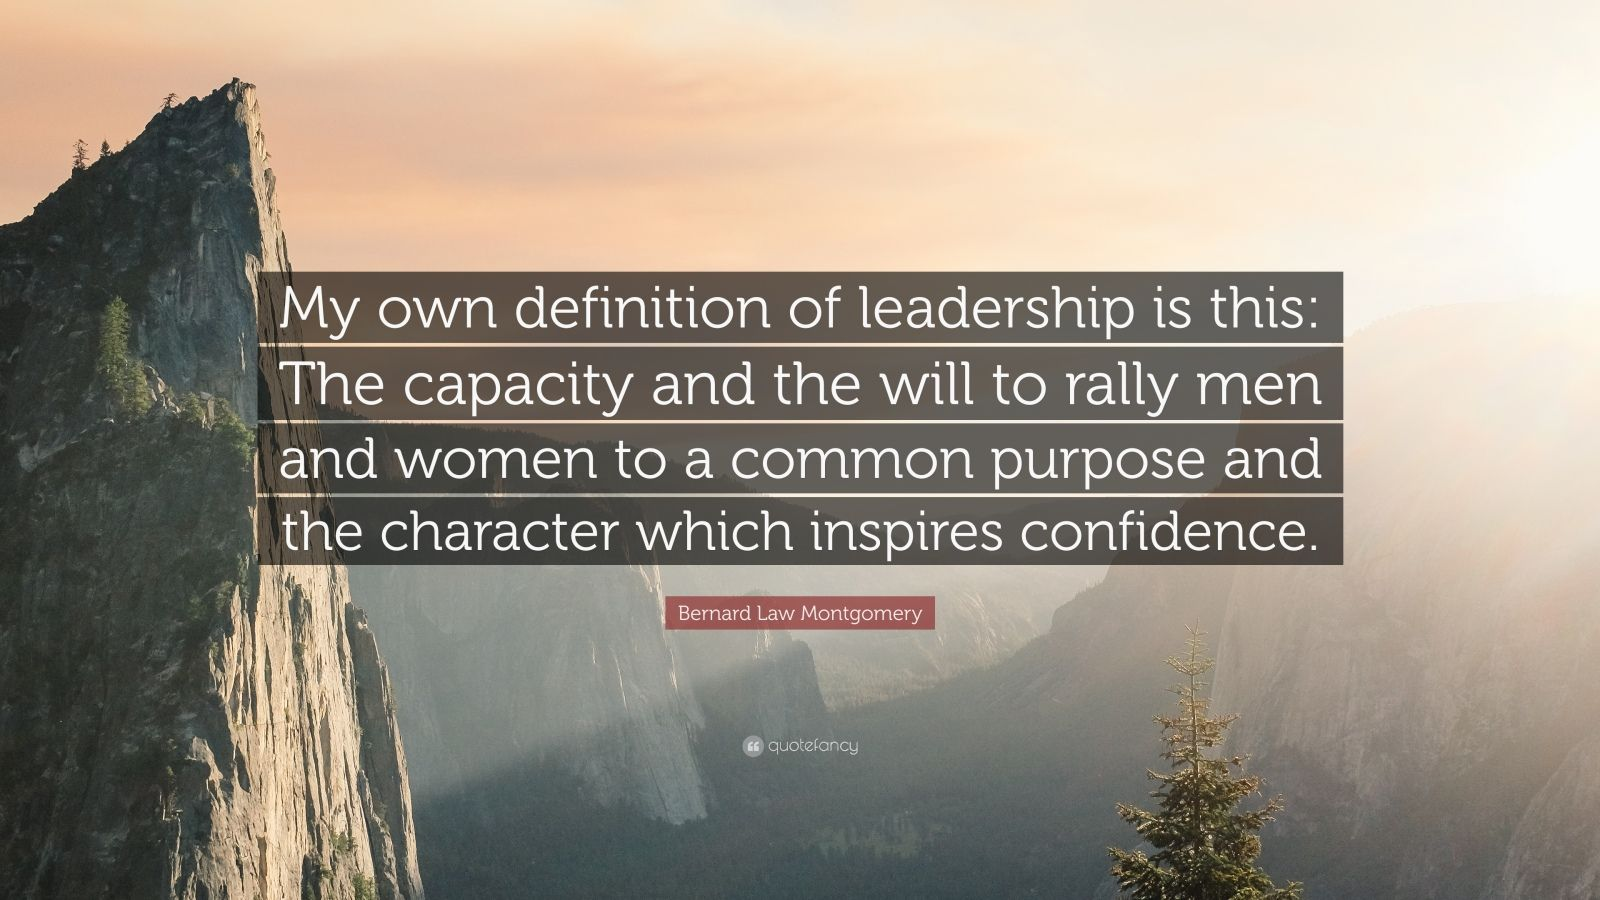 """Bernard Law Montgomery Quote: """"My own definition of leadership is this: The capacity and the will to rally men and women to a common purpose and the character which inspires confidence."""""""